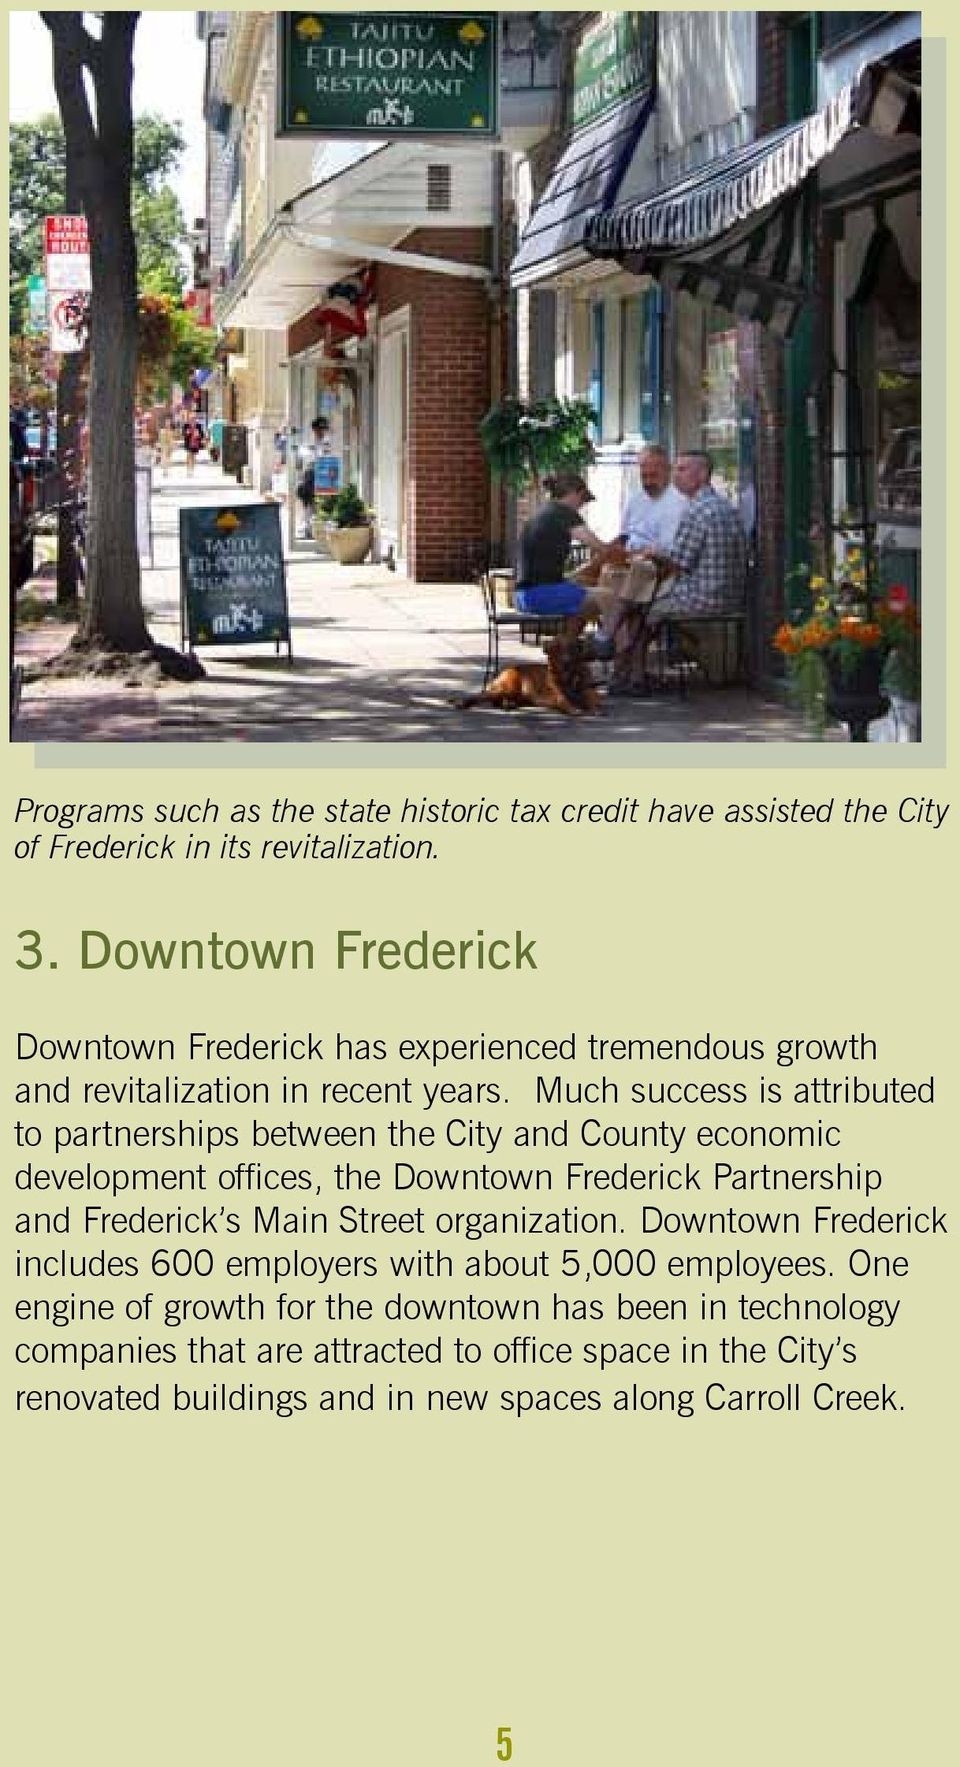 Much success is attributed to partnerships between the City and County economic development offices, the Downtown Frederick Partnership and Frederick s Main